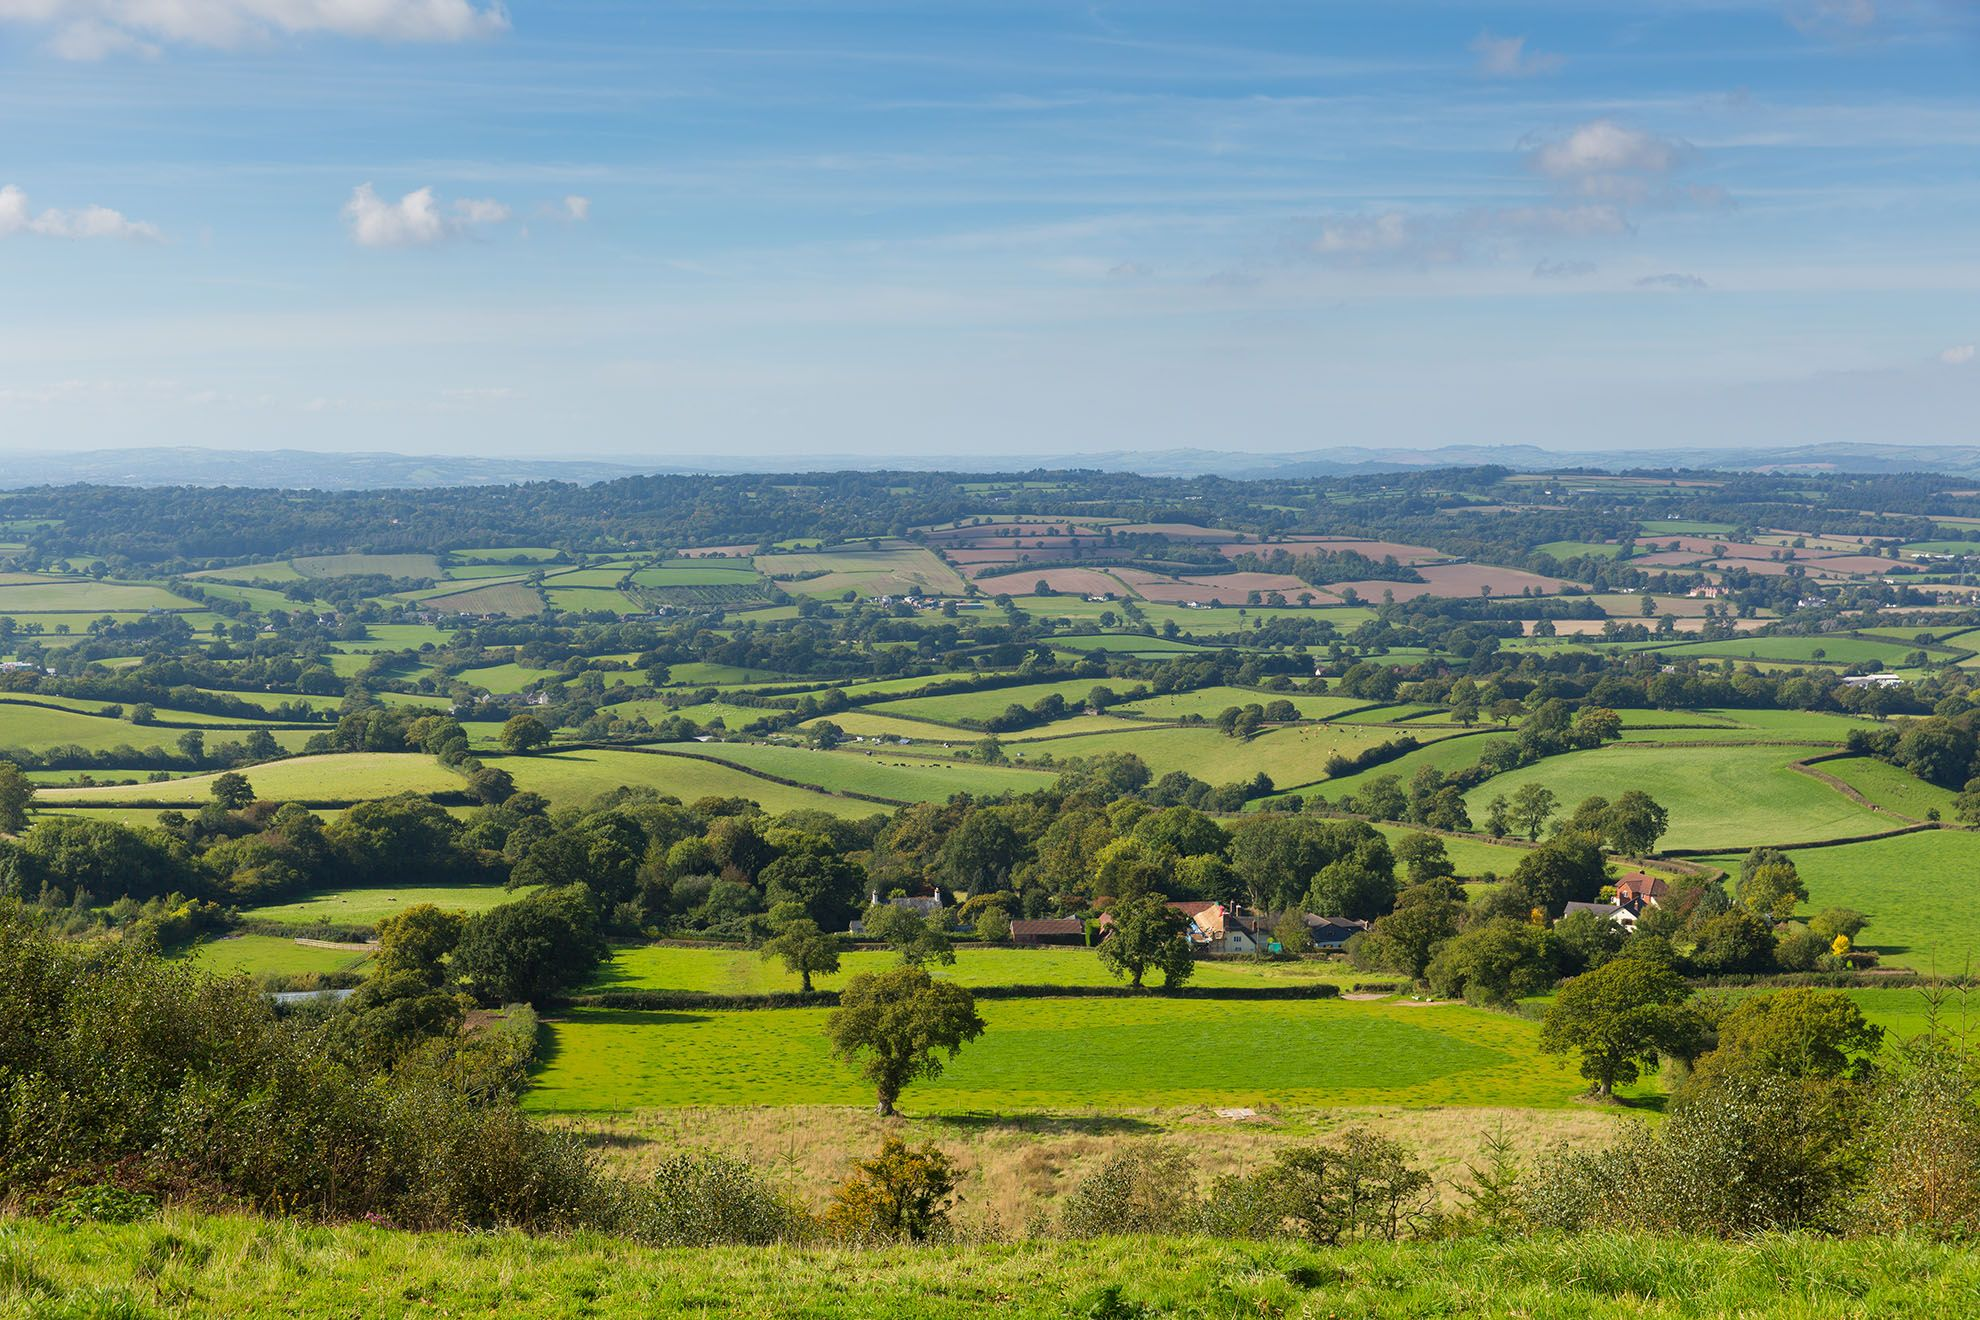 The Blackdown Hills nearby form a tranquil landscape on the Devon and Somerset border